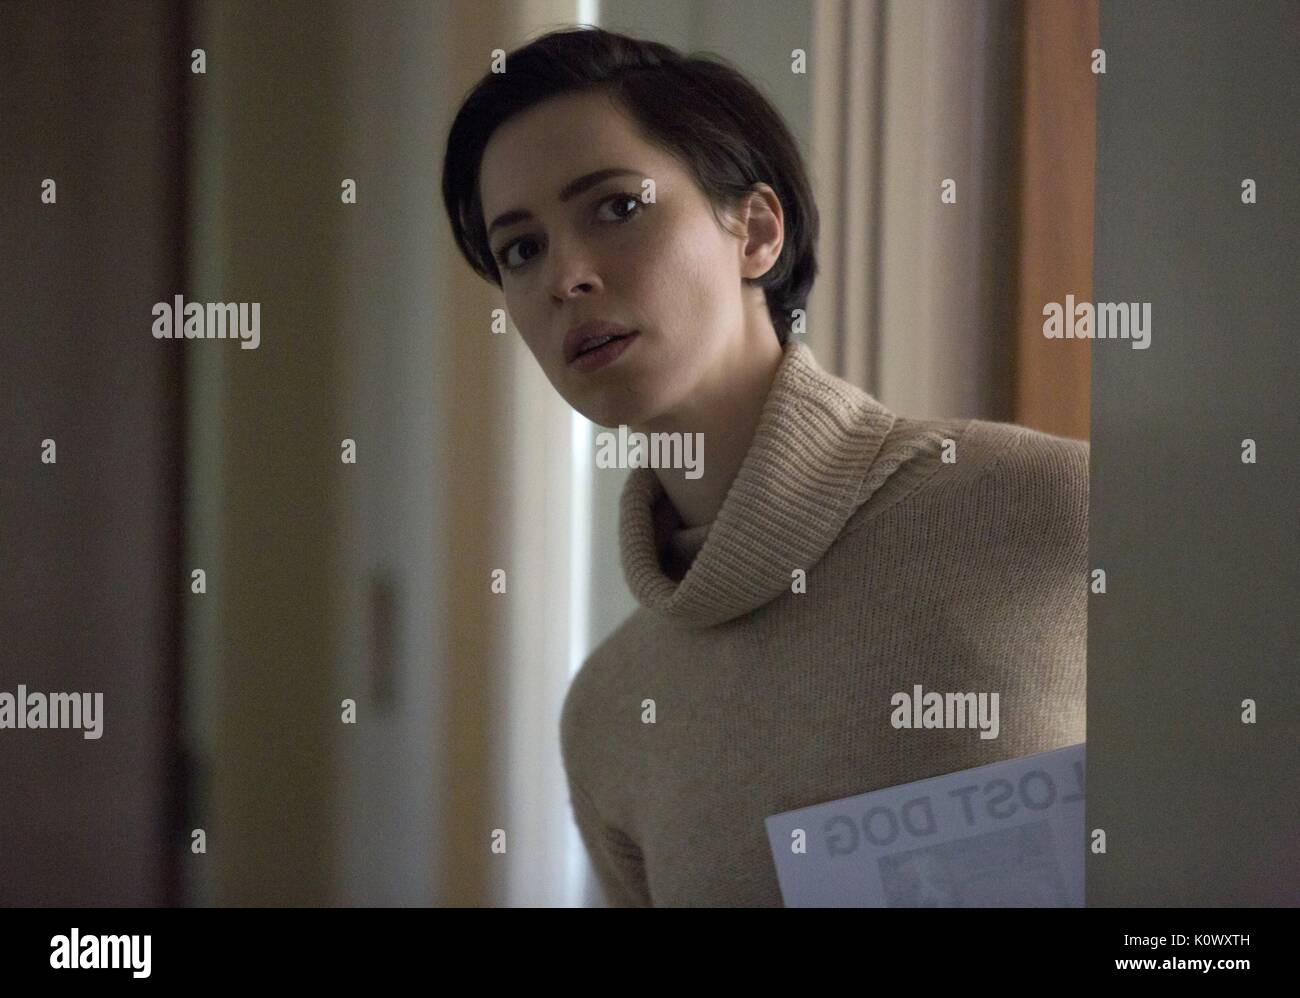 REBECCA HALL THE GIFT (2015) - Stock Image